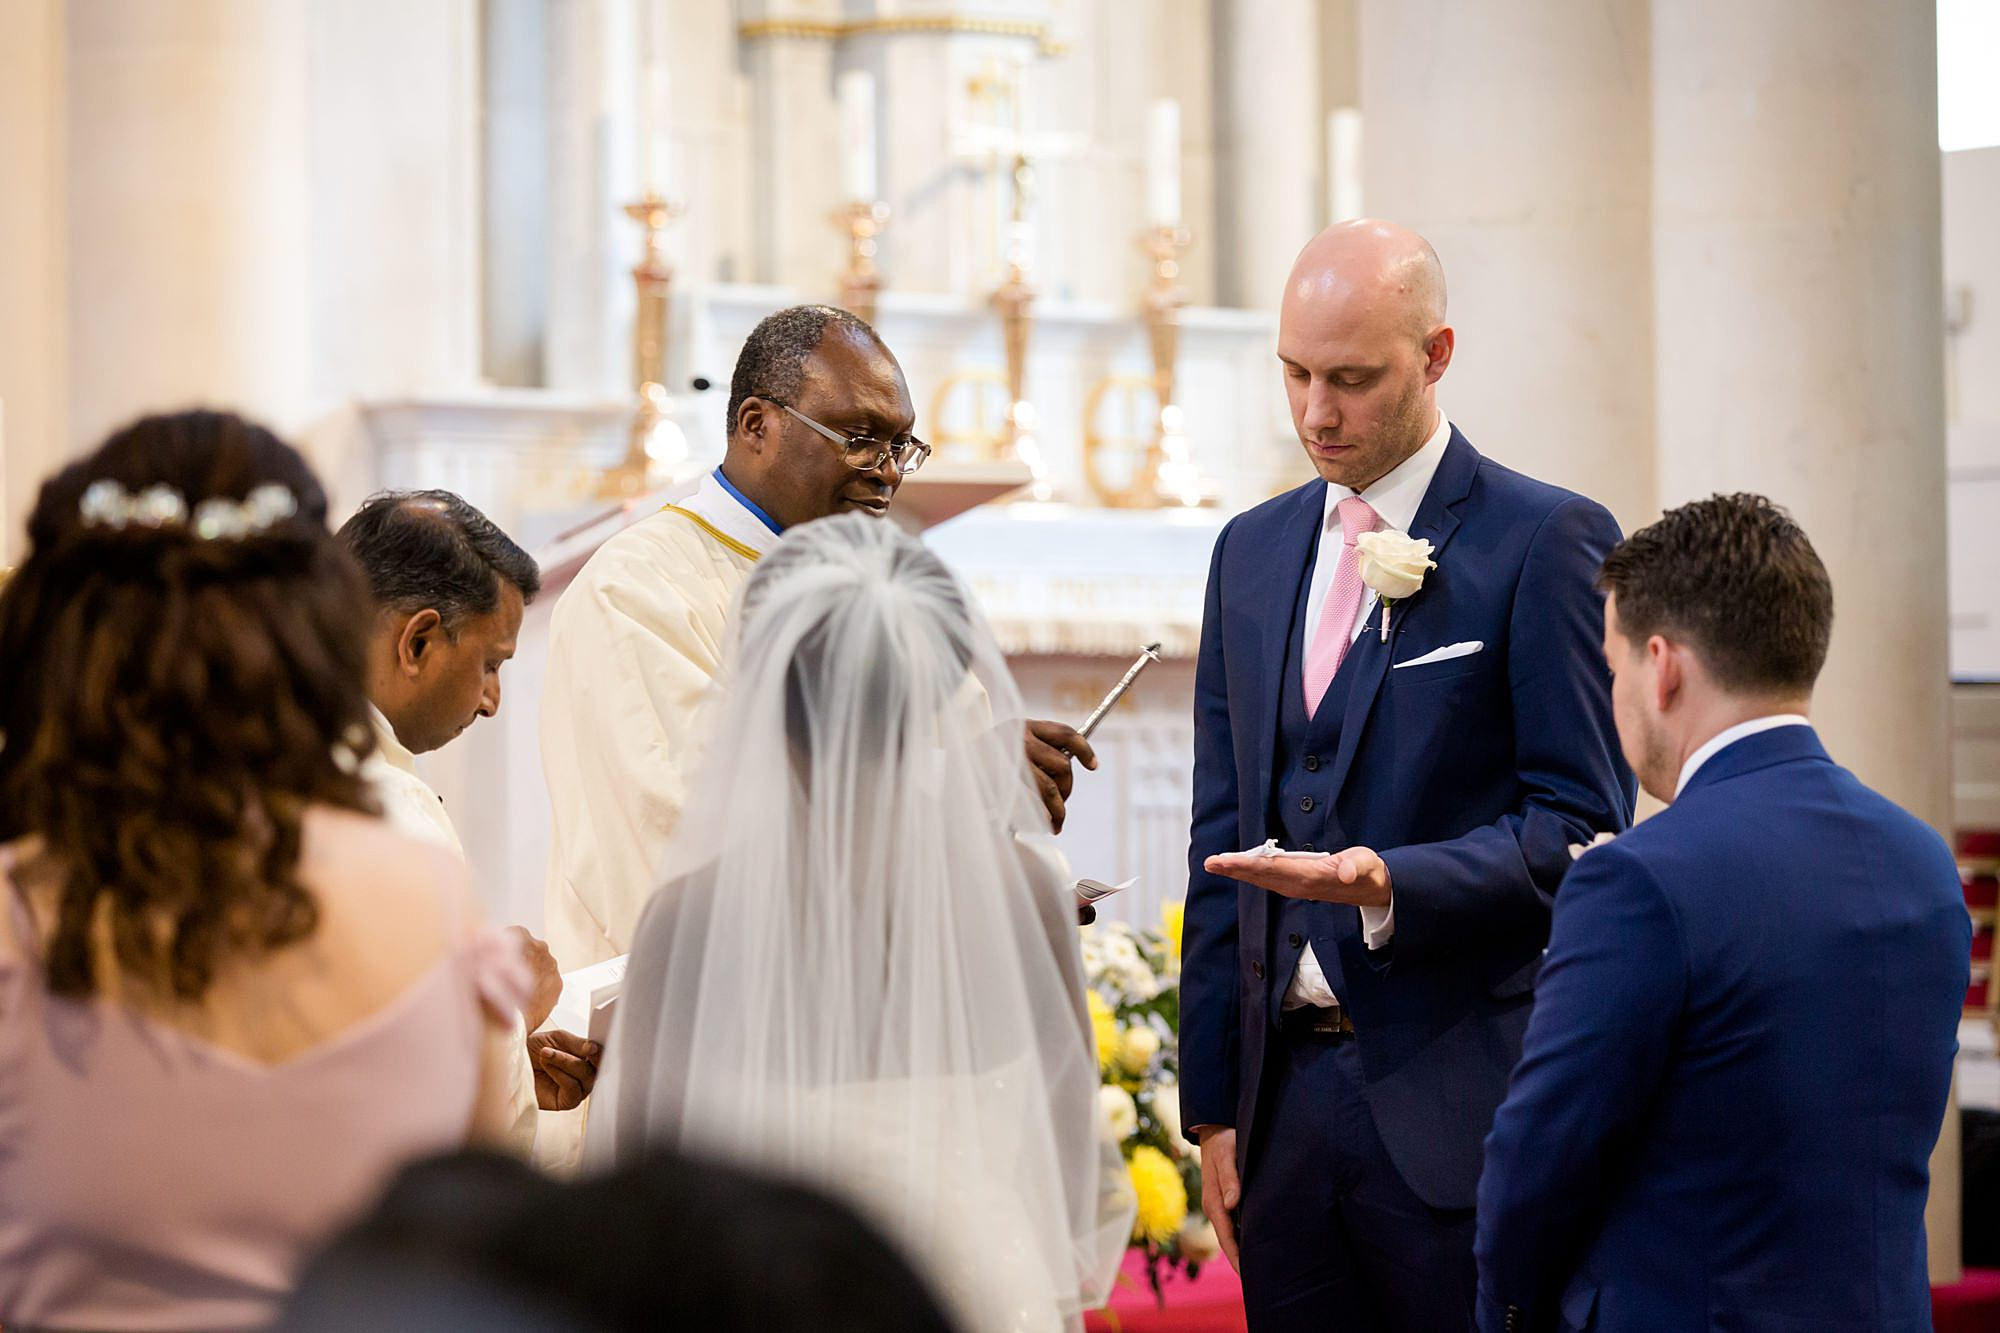 Bank of England Sports Centre wedding priest blesses rings